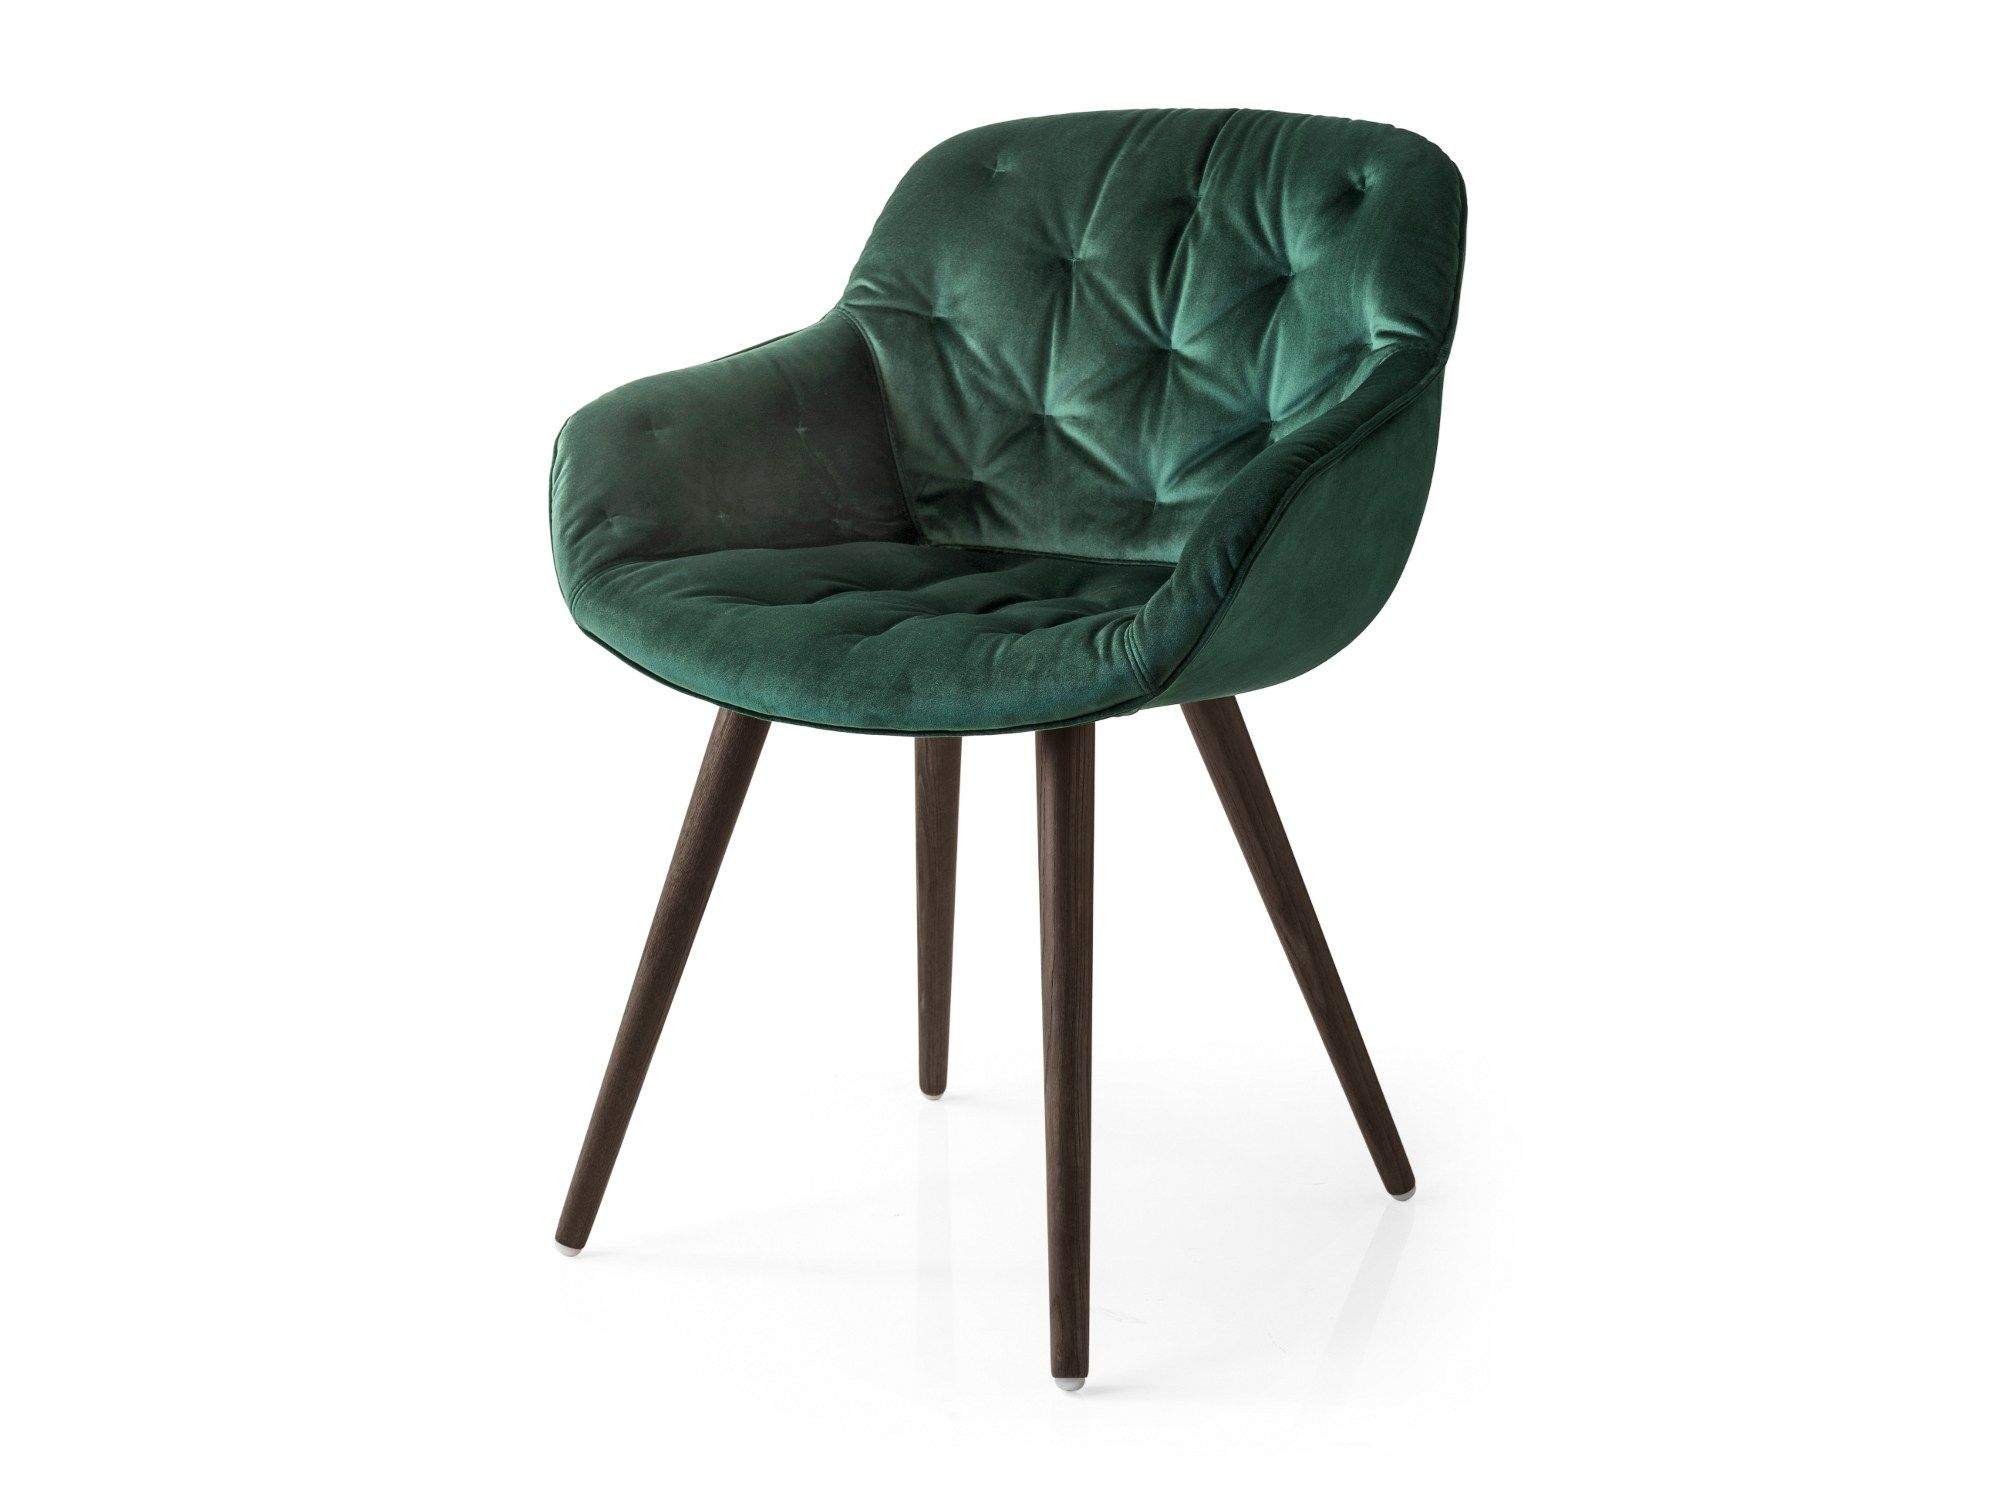 poltroncina capitonné in velluto per contract igloo soft by ... - Poltroncina Calligaris